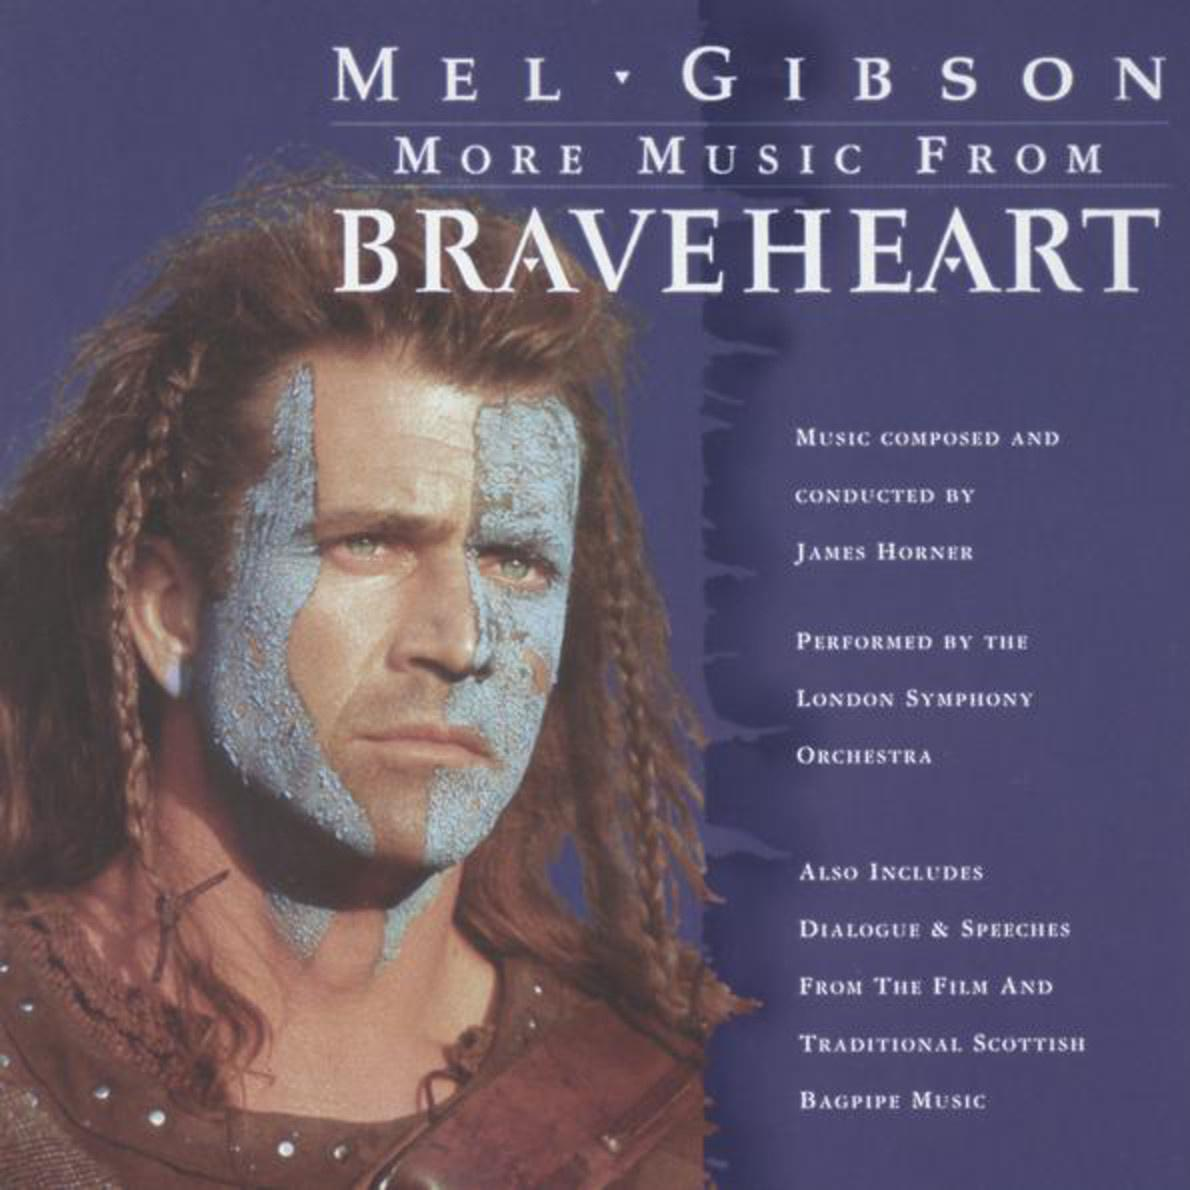 thesis statement braveheart The thesis statement is the core of the introduction it is a very important part of the essay and every essay format has this statement as its focal point once you have a well worded thesis statement, you have succeeded in placing your best foot forward.